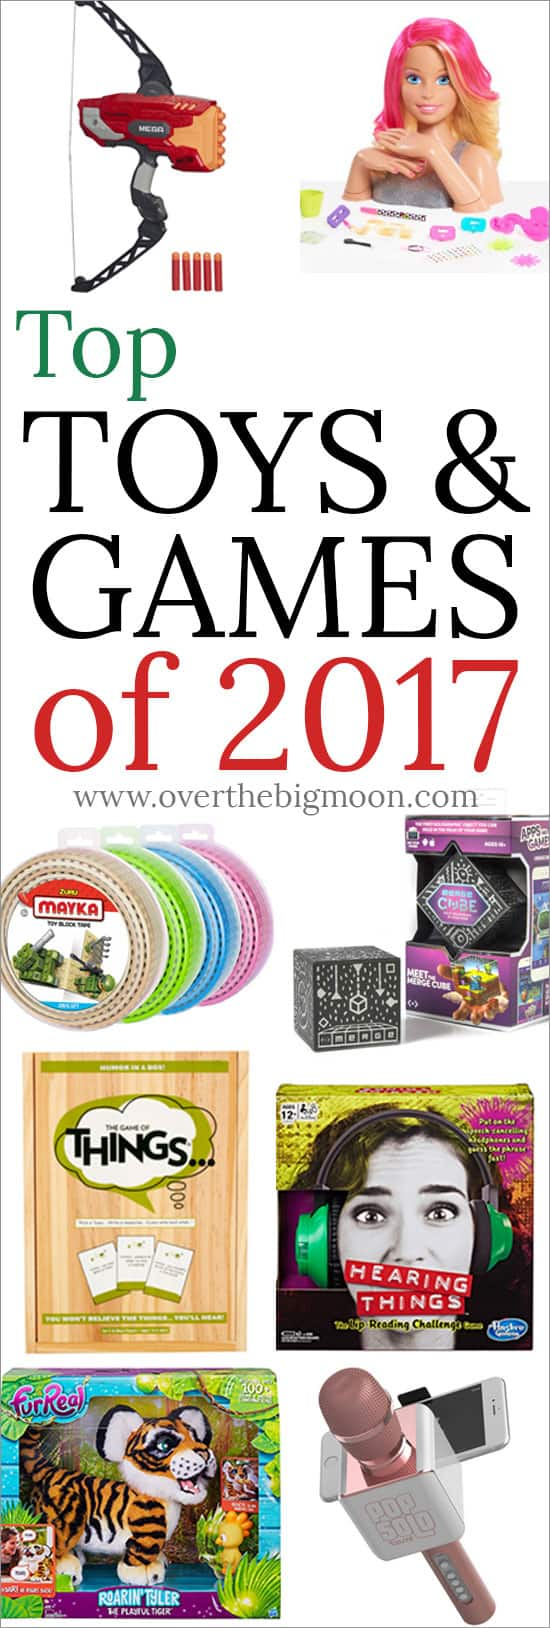 Top Toys and Games of 2017 - from overthebigmoon.com! Need help finishing up your shopping this year? Then check out this guide!